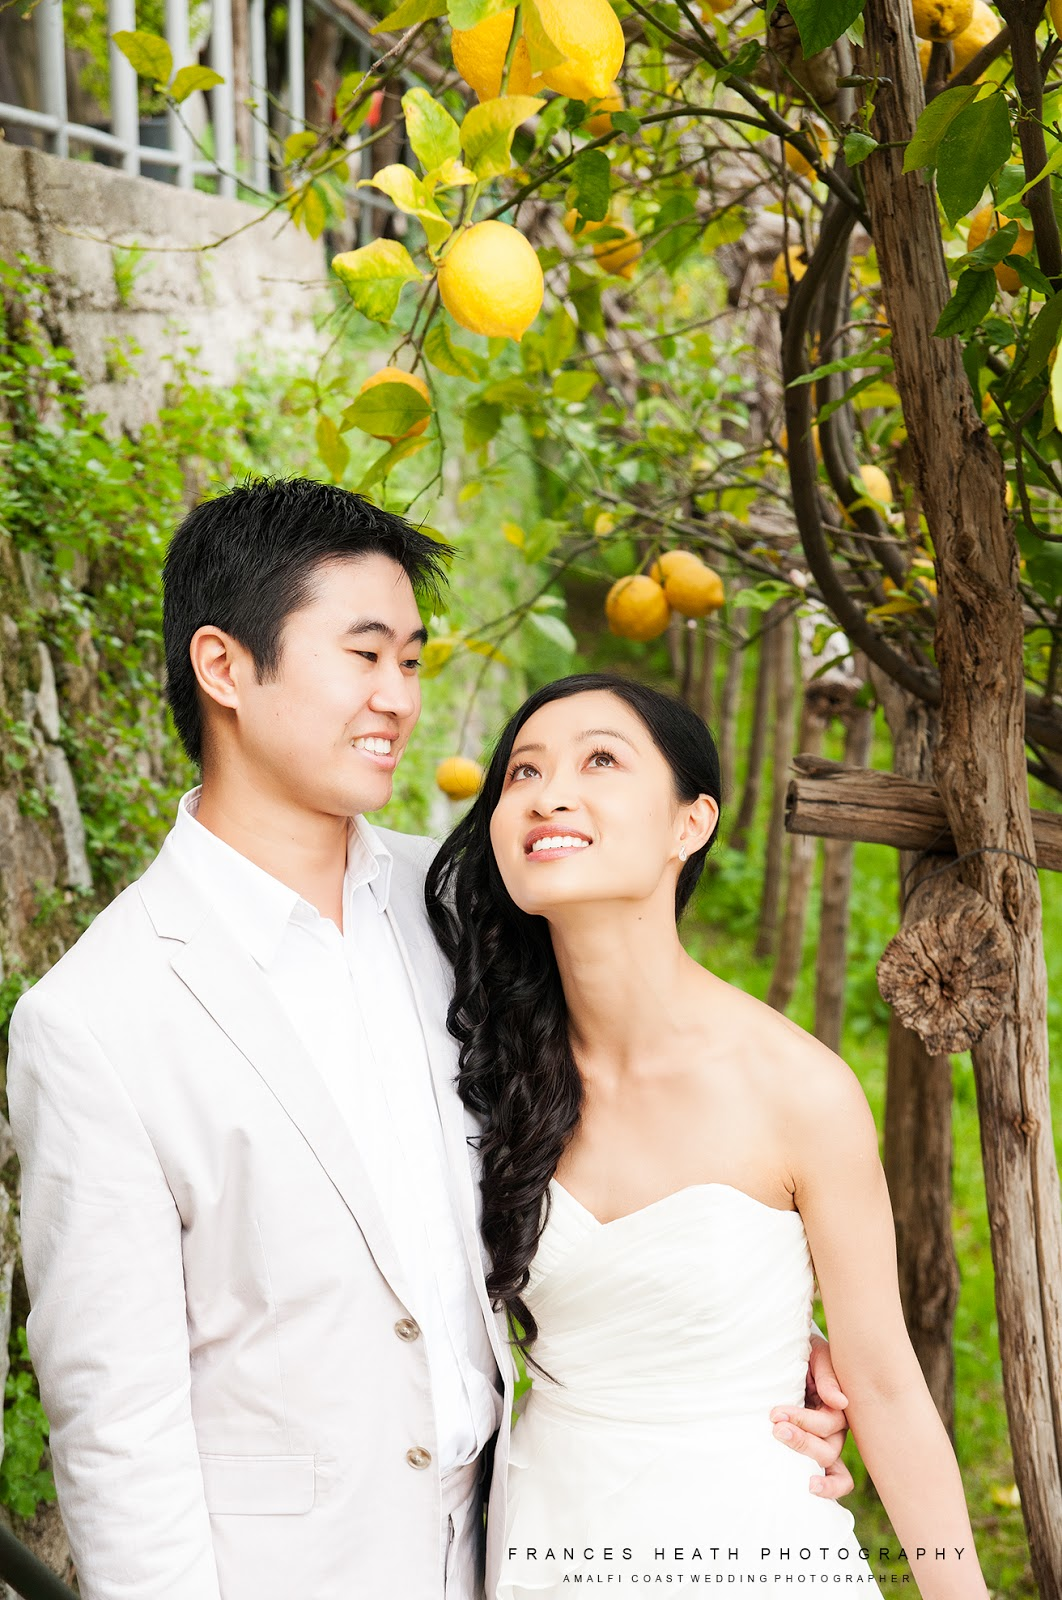 Wedding portrait in a lemon grove